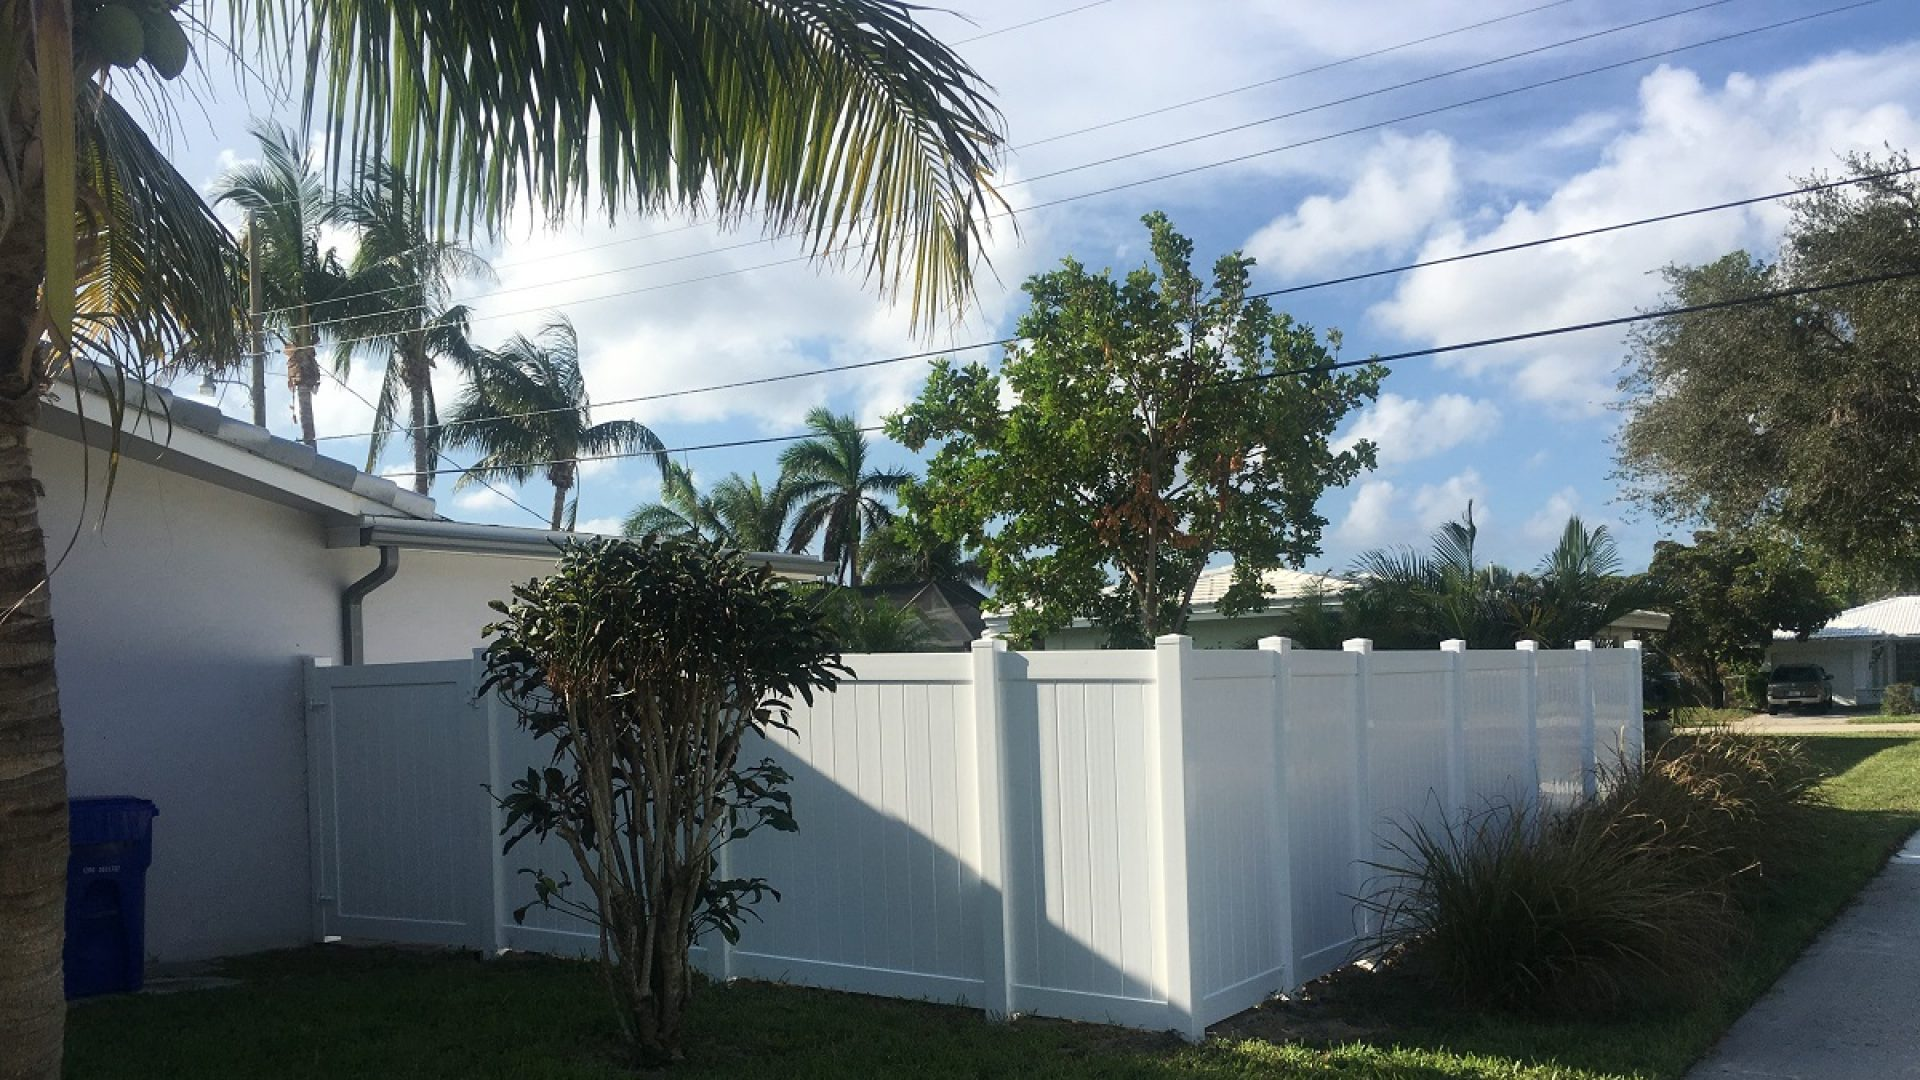 Deerfield Fence Builders